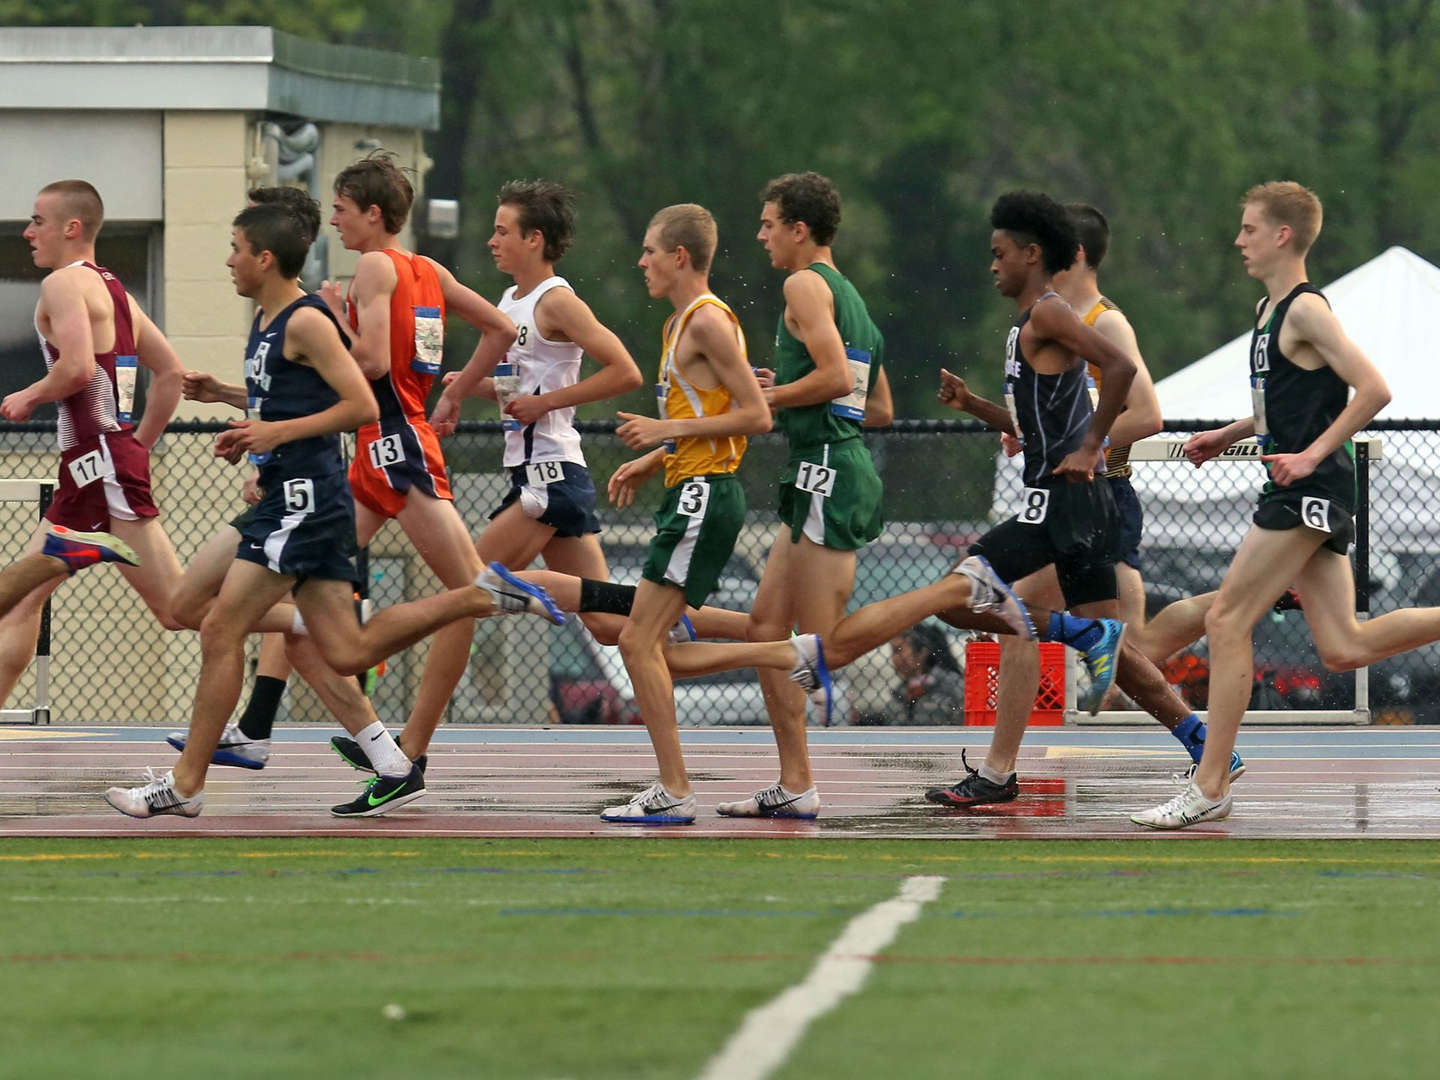 high school track athletes competing